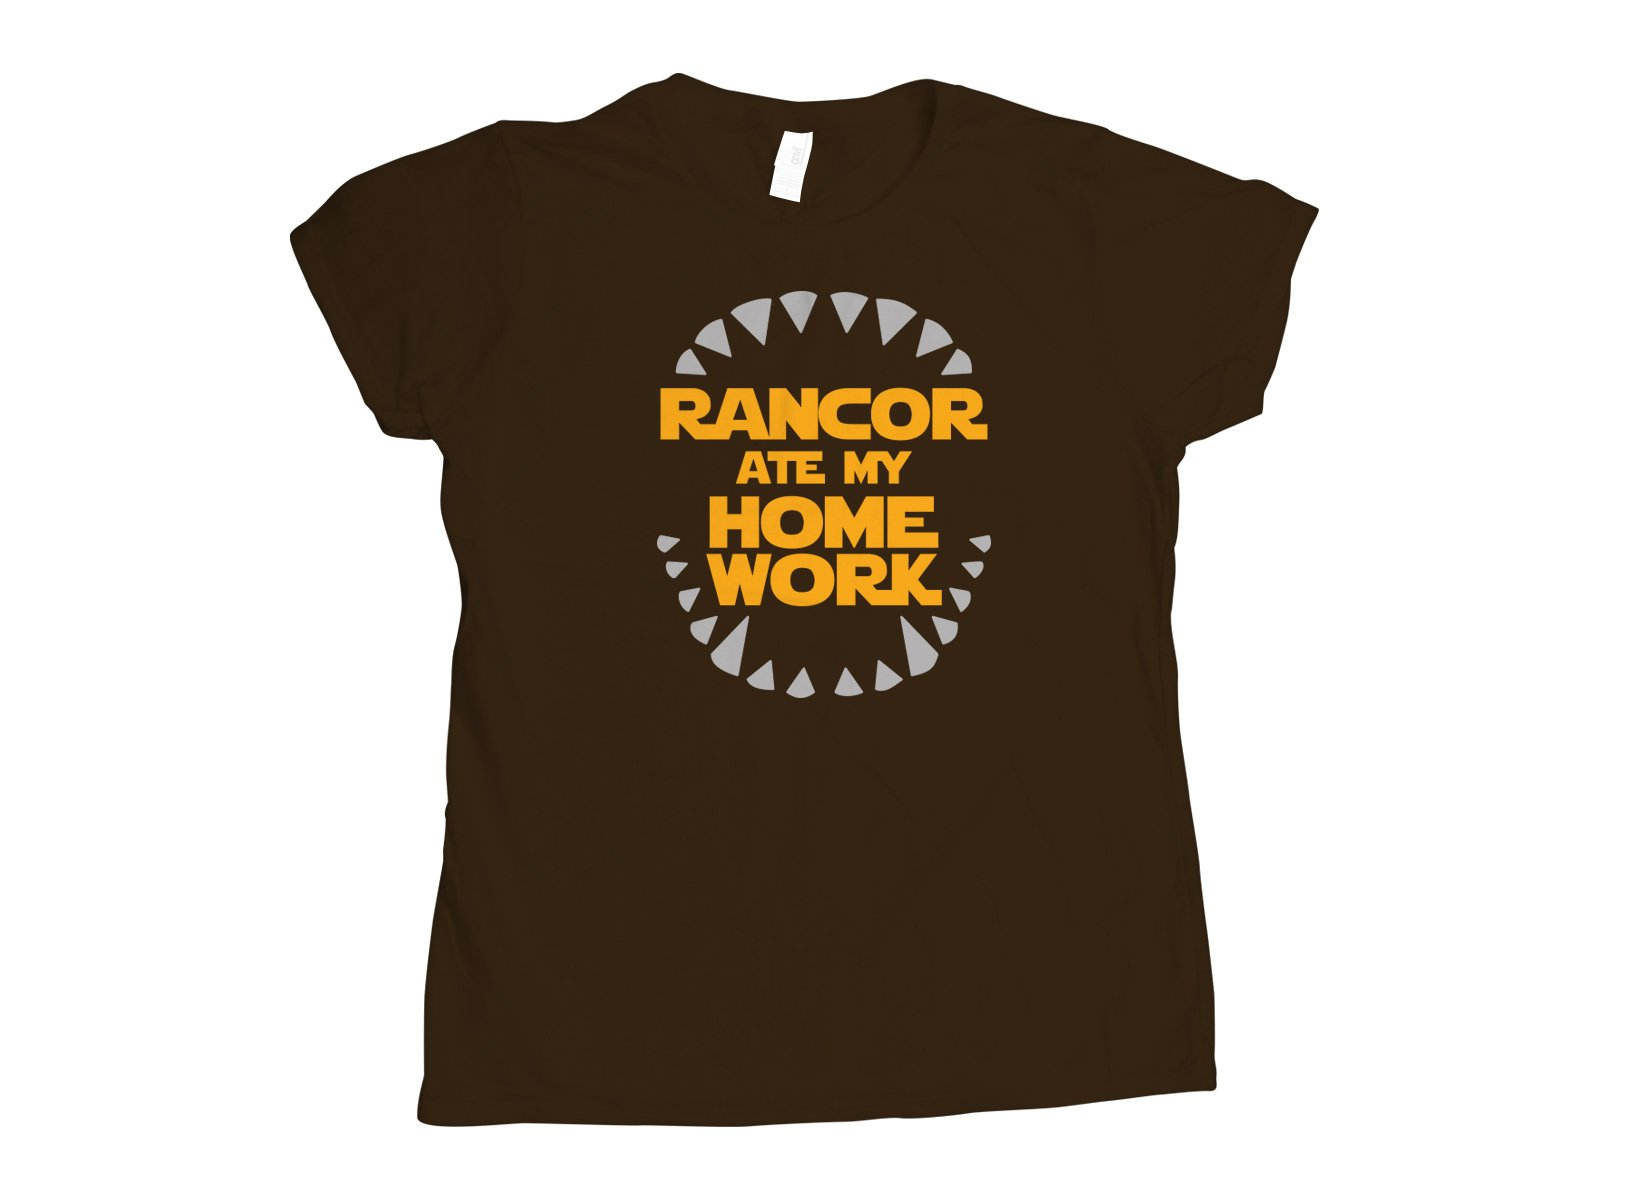 Rancor Ate My Homework on Womens T-Shirt